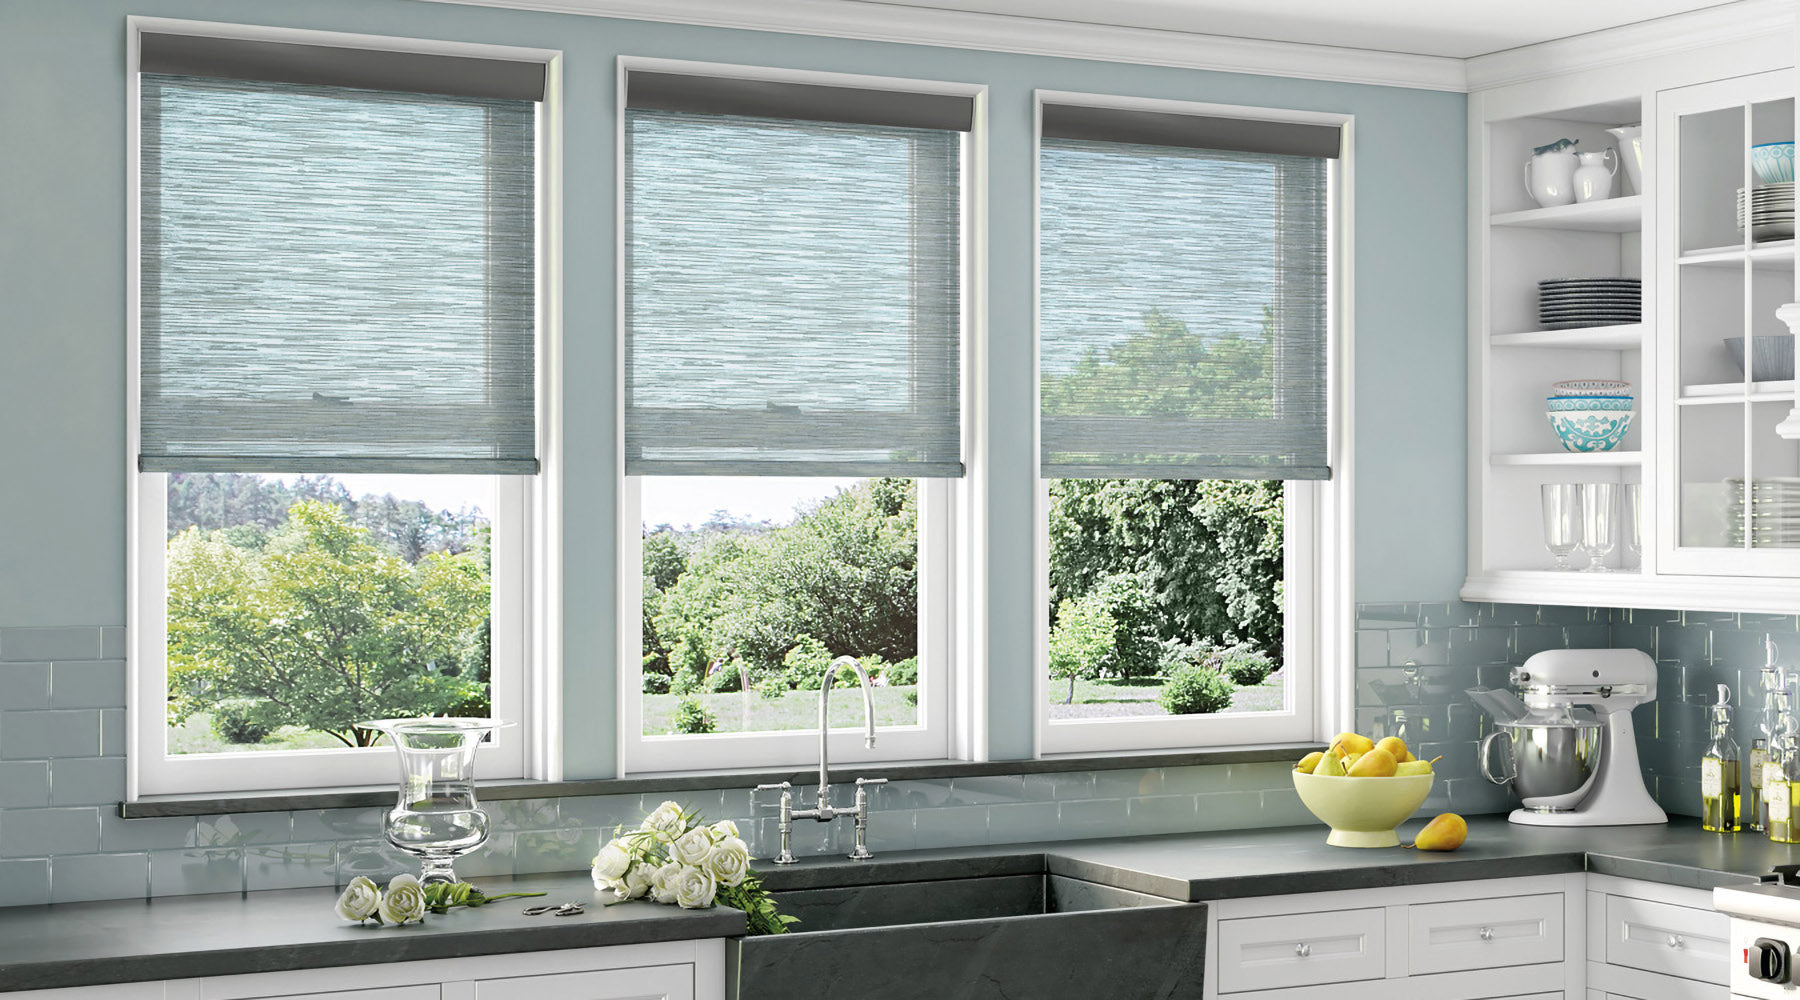 shop custom window treatments at Regal Paint Cetners. Modern kitchen with gray/blue walls, white cabinets, and modern light filter window shades.